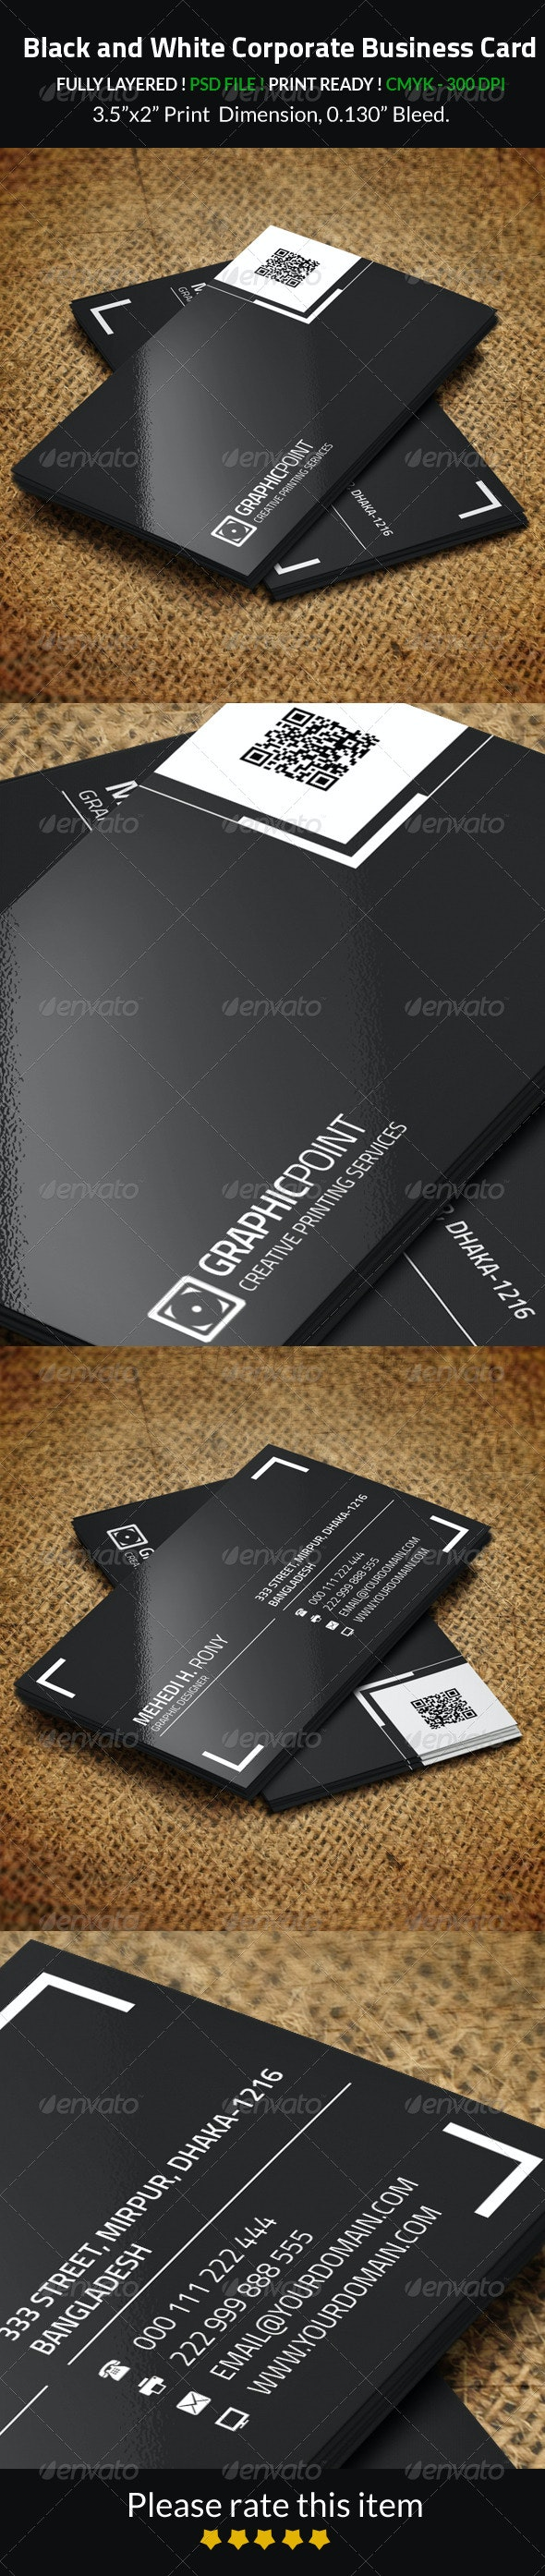 Black and White Corporate Business Card - Corporate Business Cards